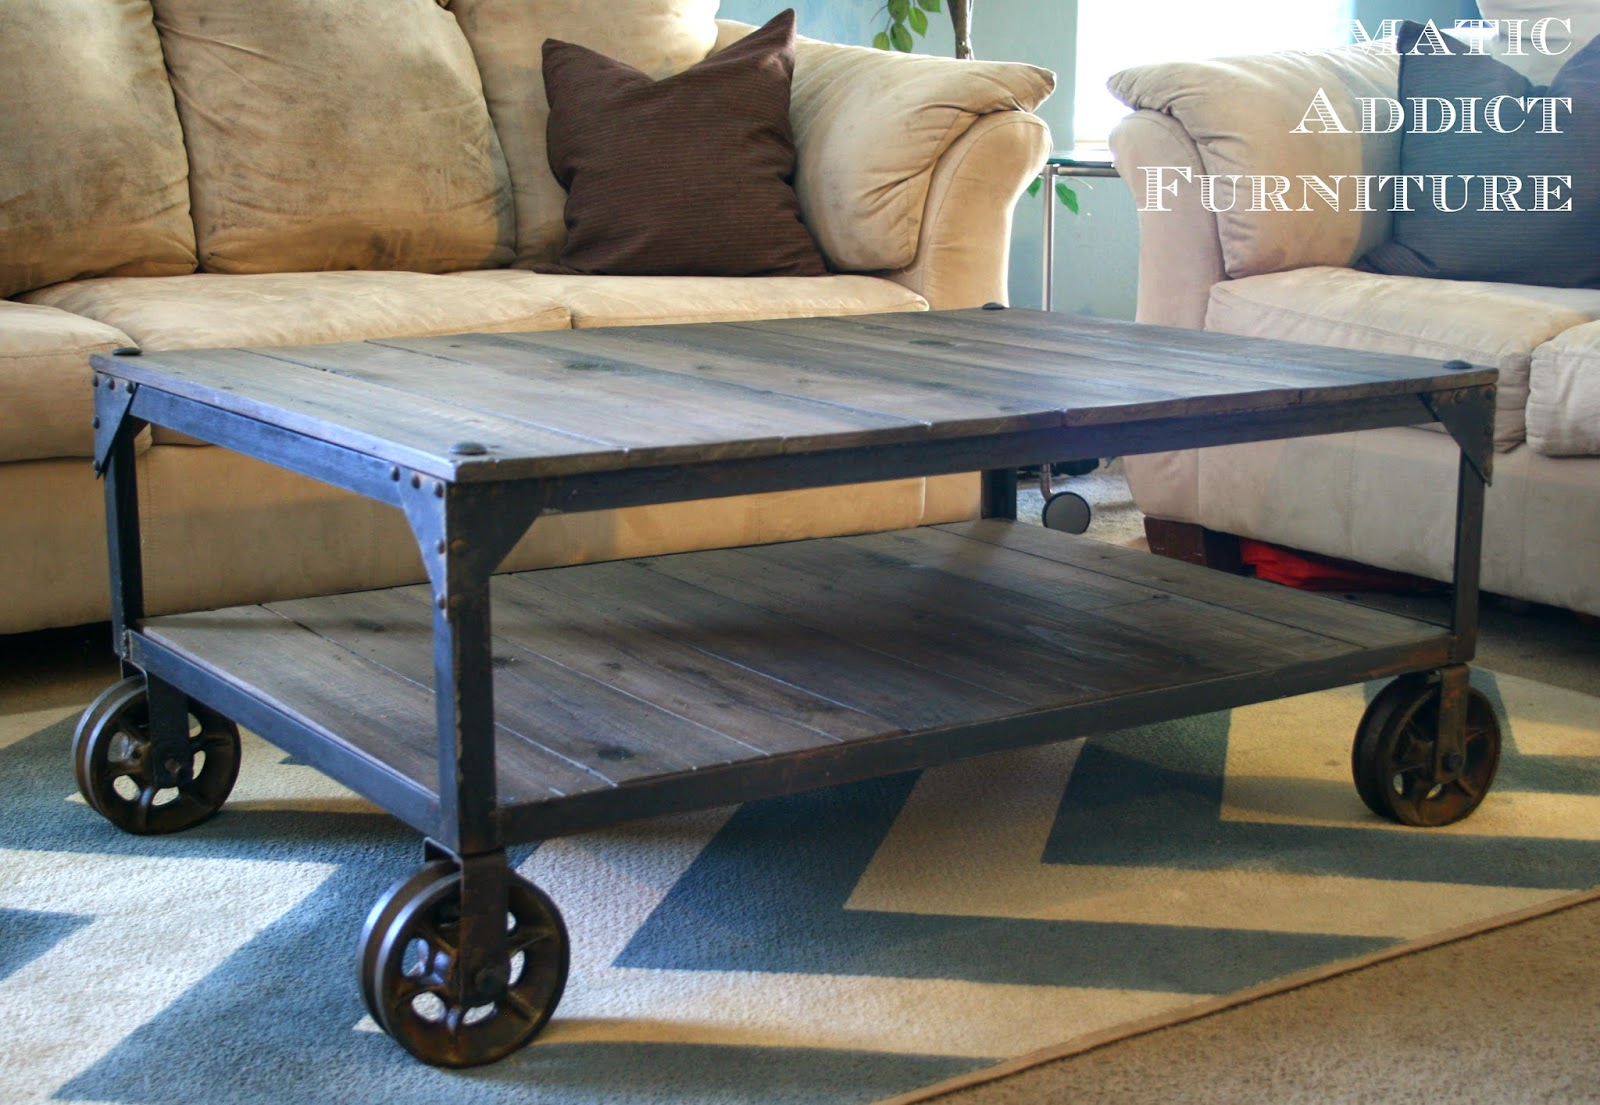 Factory caster vintage industrial furniture - Diy Industrial Coffee Table